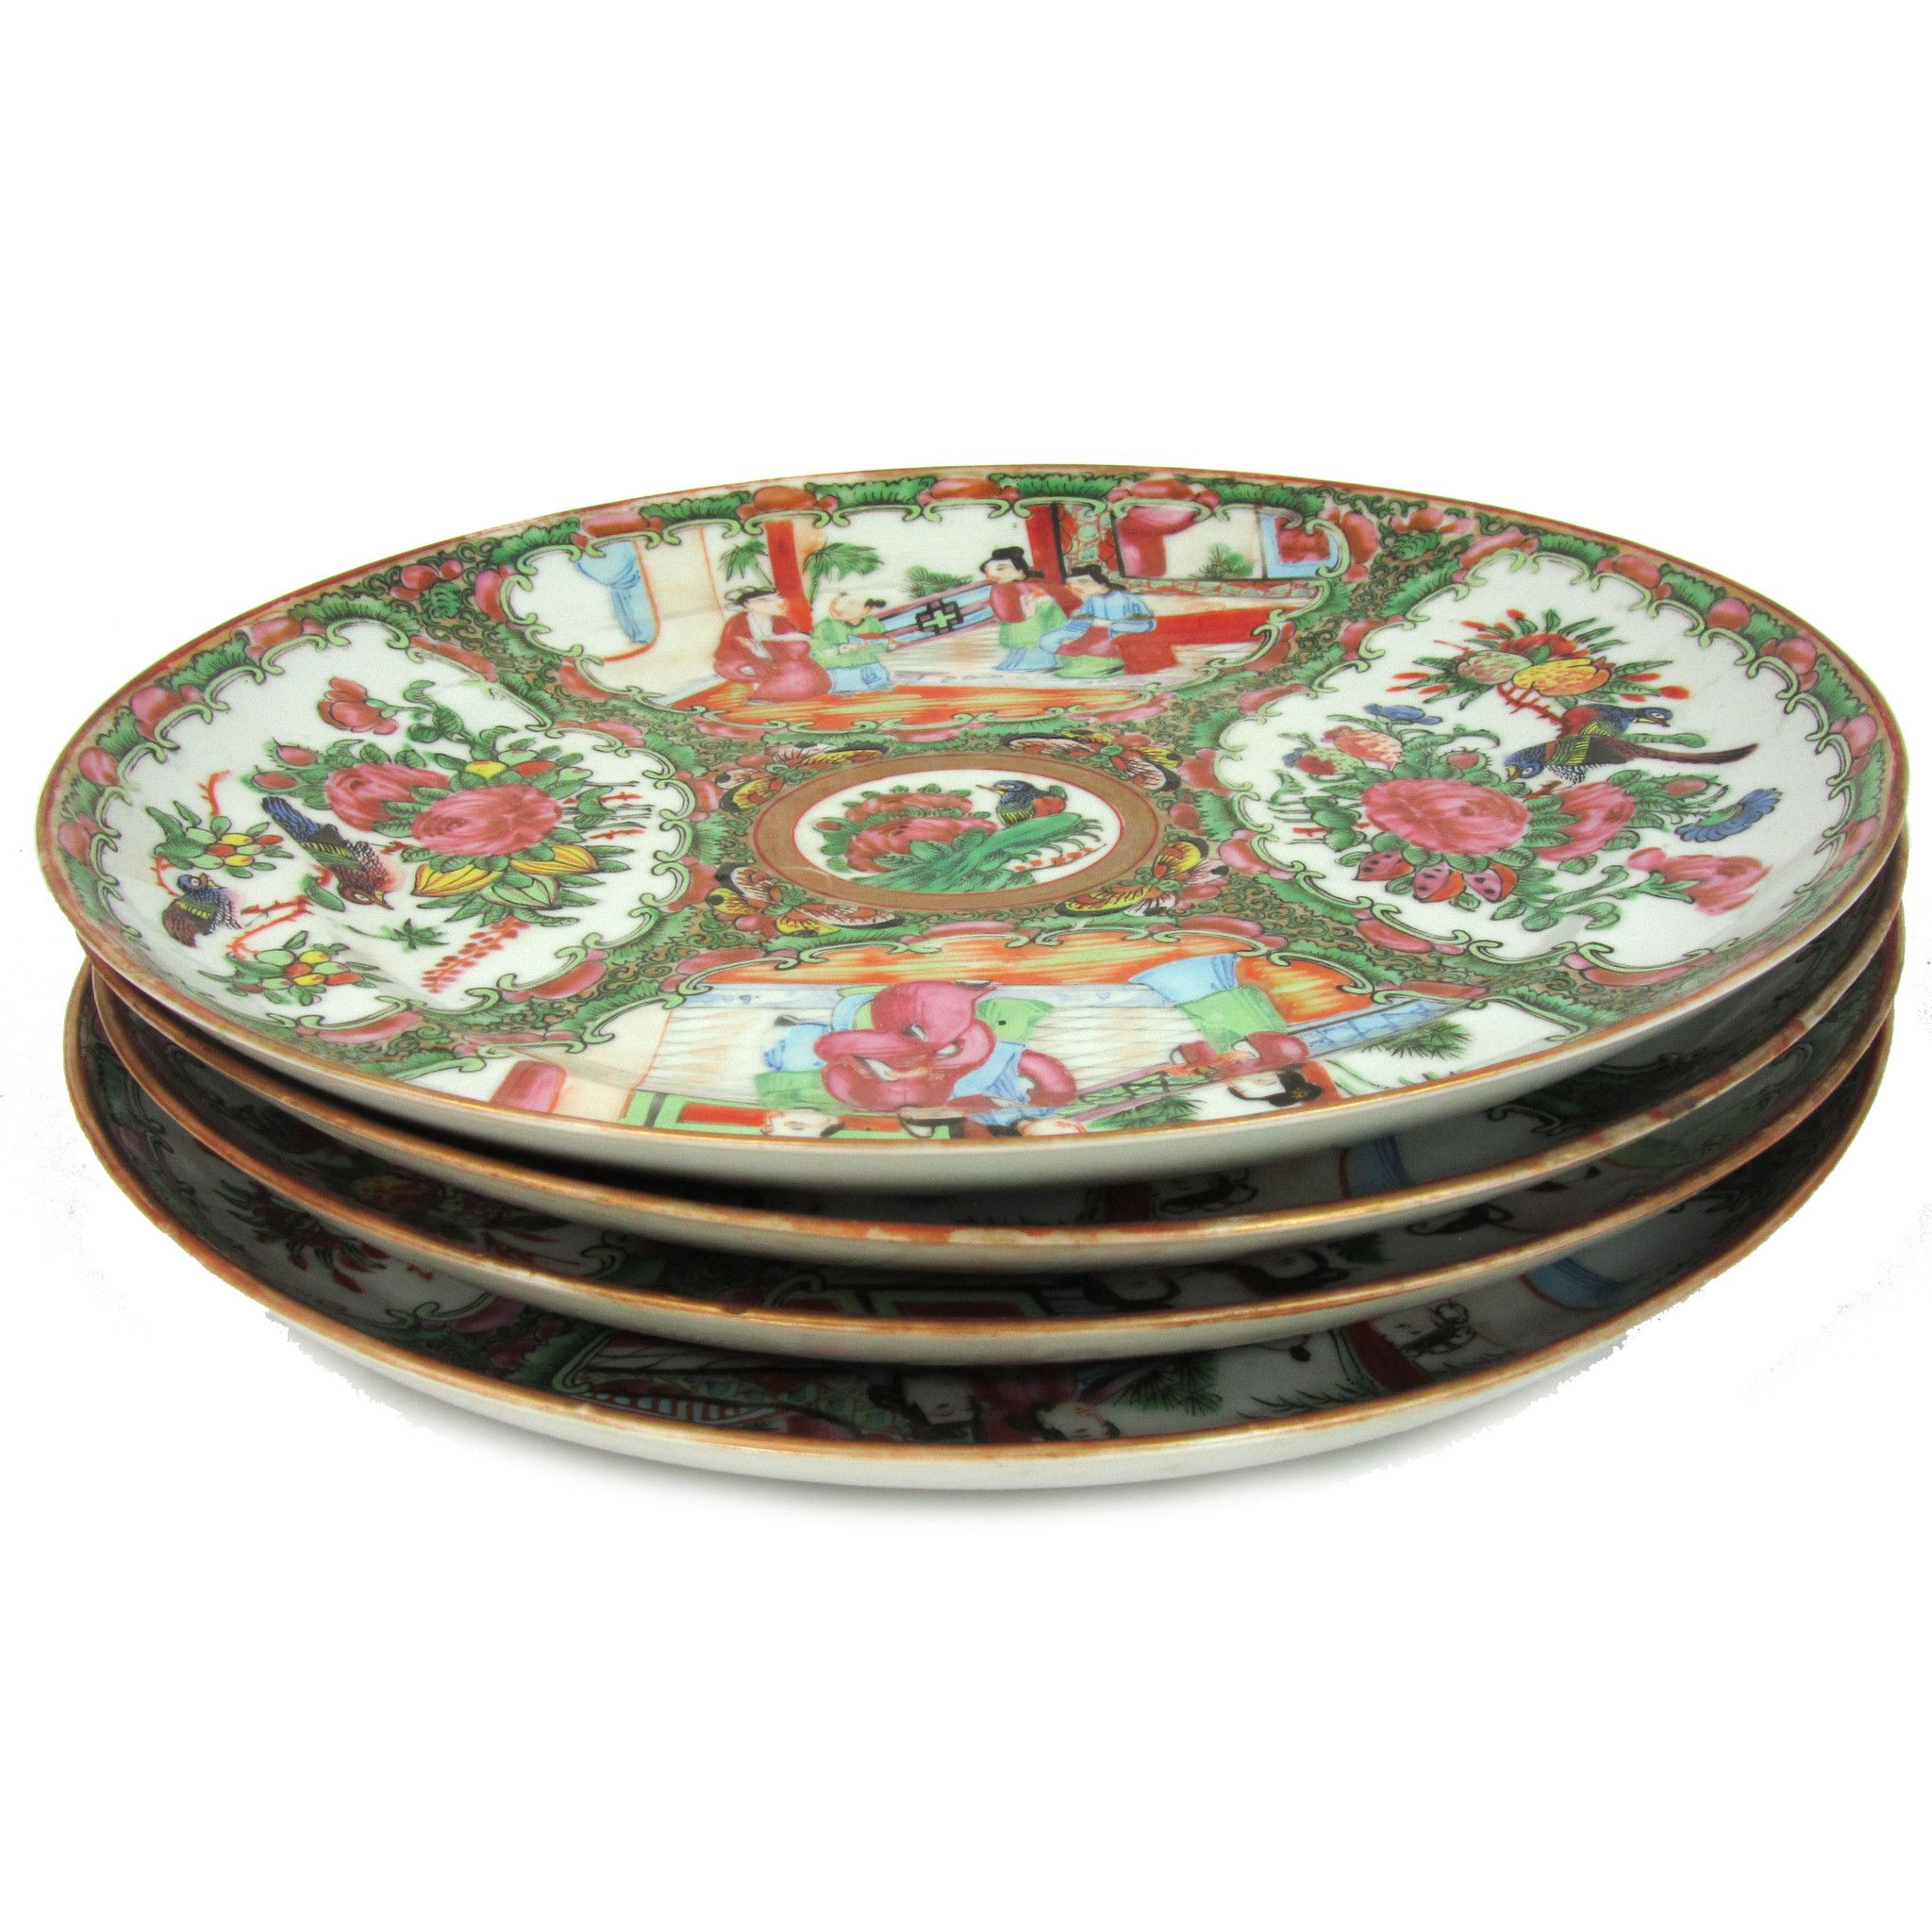 Antique Rose Medallion Chinese Porcelain Plates Set of 4  sc 1 st  Pinterest & Antique Rose Medallion Chinese Porcelain Plates Set of 4 | Products ...